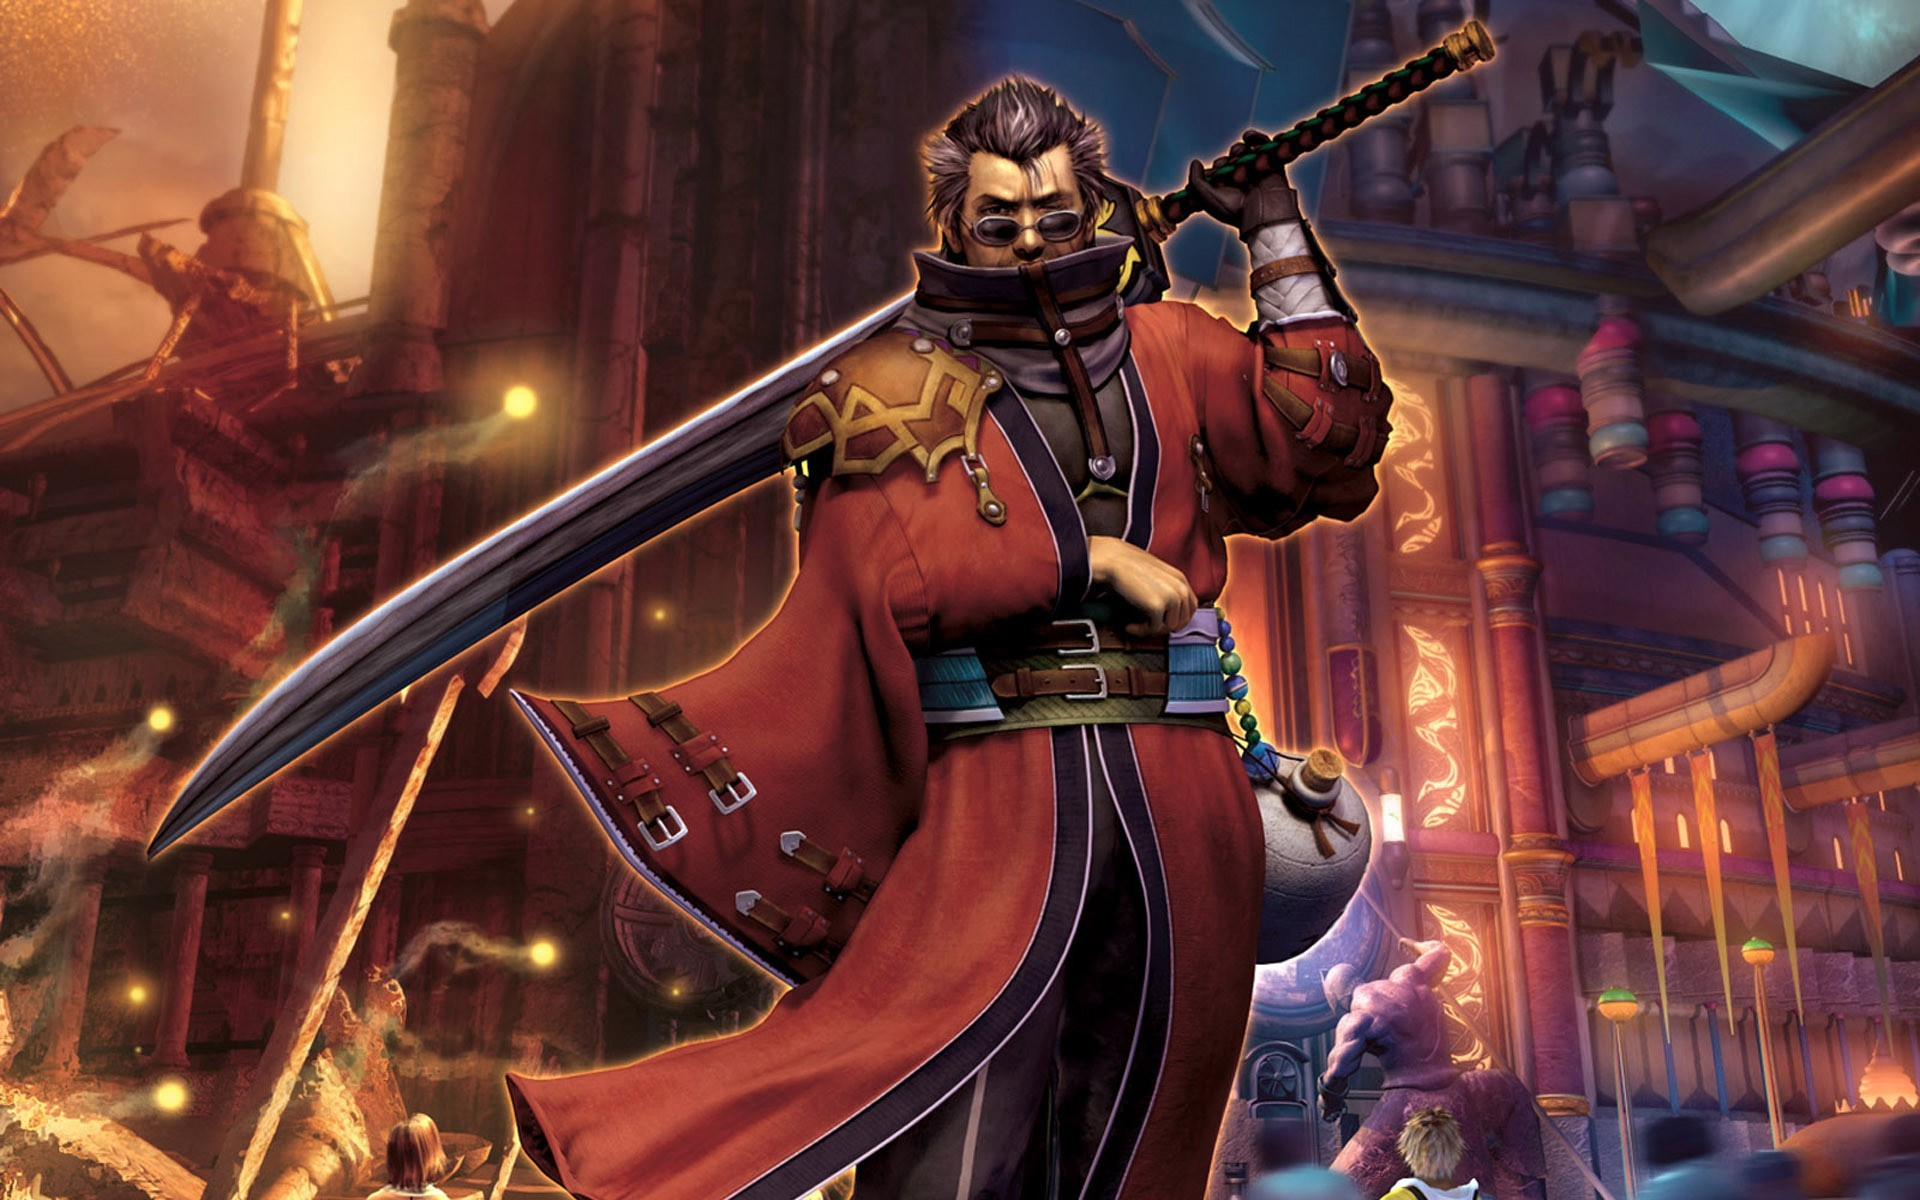 Free Download Auron Final Fantasy X Wallpaper 5713 1920x1200 For